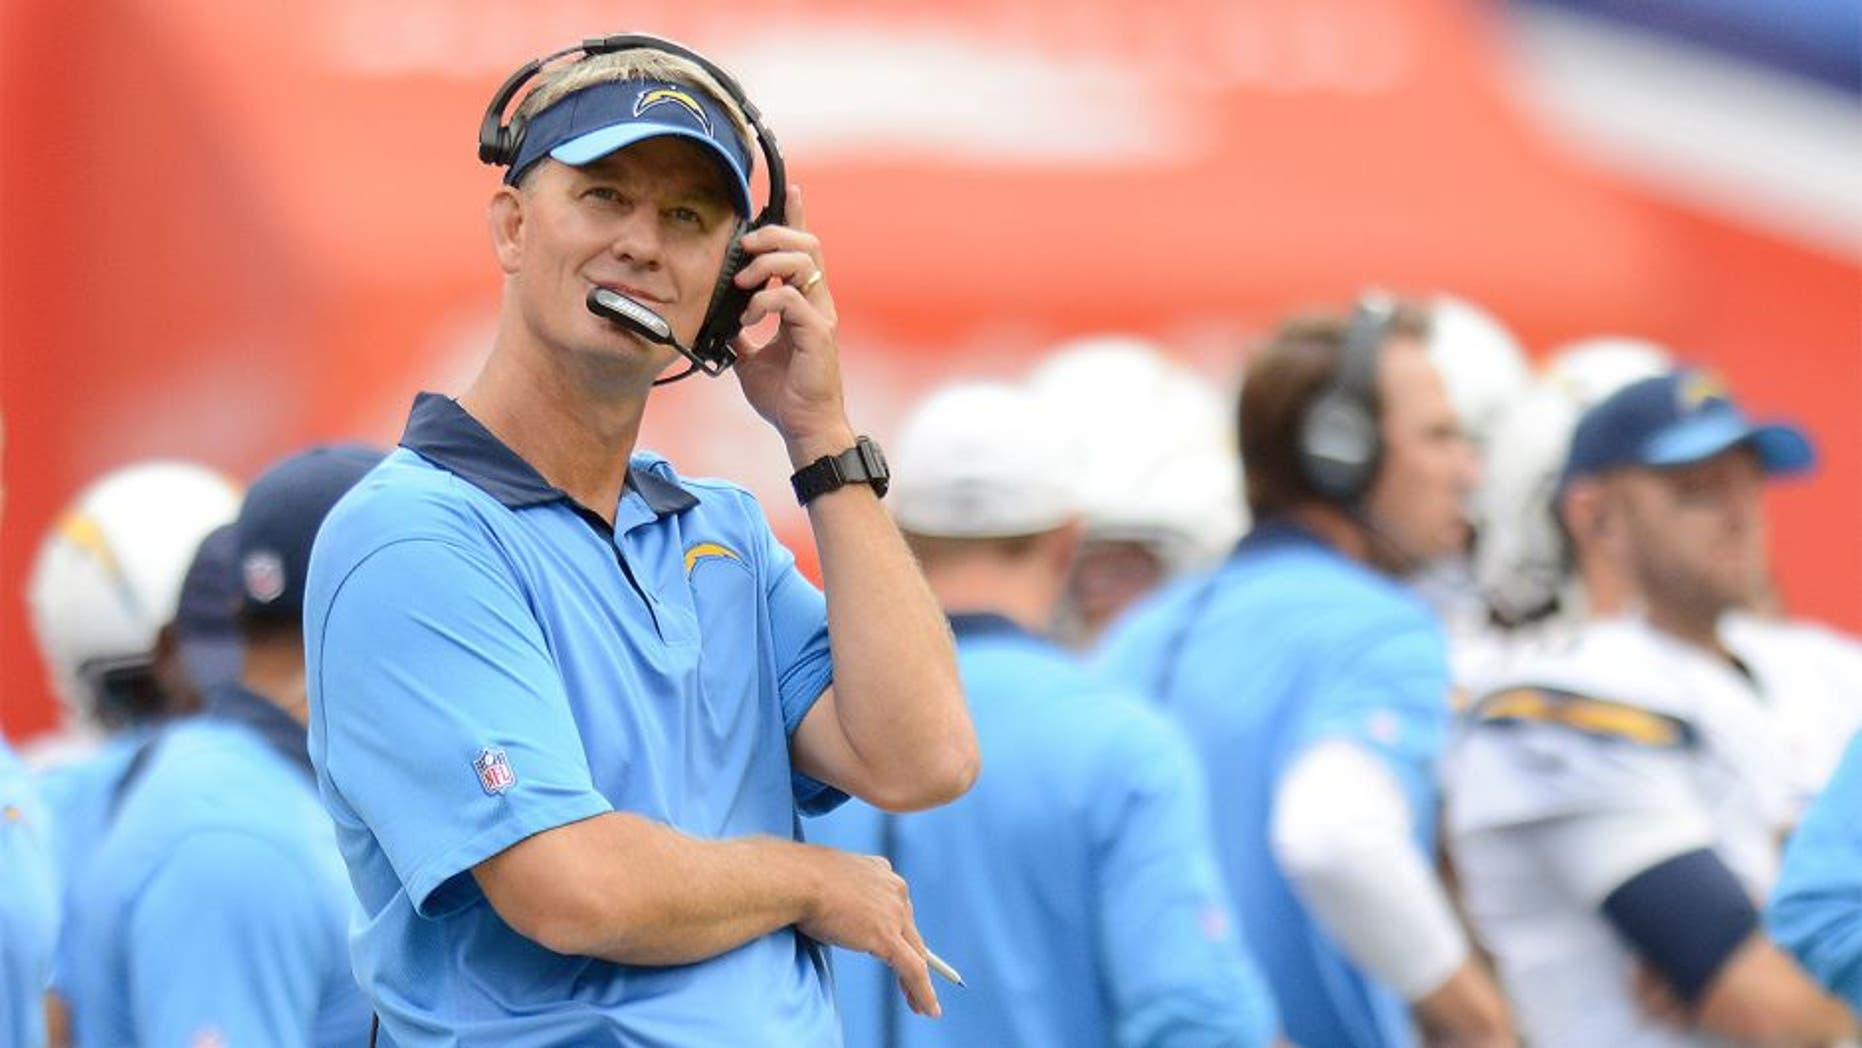 Oct 4, 2015; San Diego, CA, USA; San Diego Chargers head coach Mike McCoy looks on during the second quarter against the Cleveland Browns at Qualcomm Stadium. Mandatory Credit: Jake Roth-USA TODAY Sports